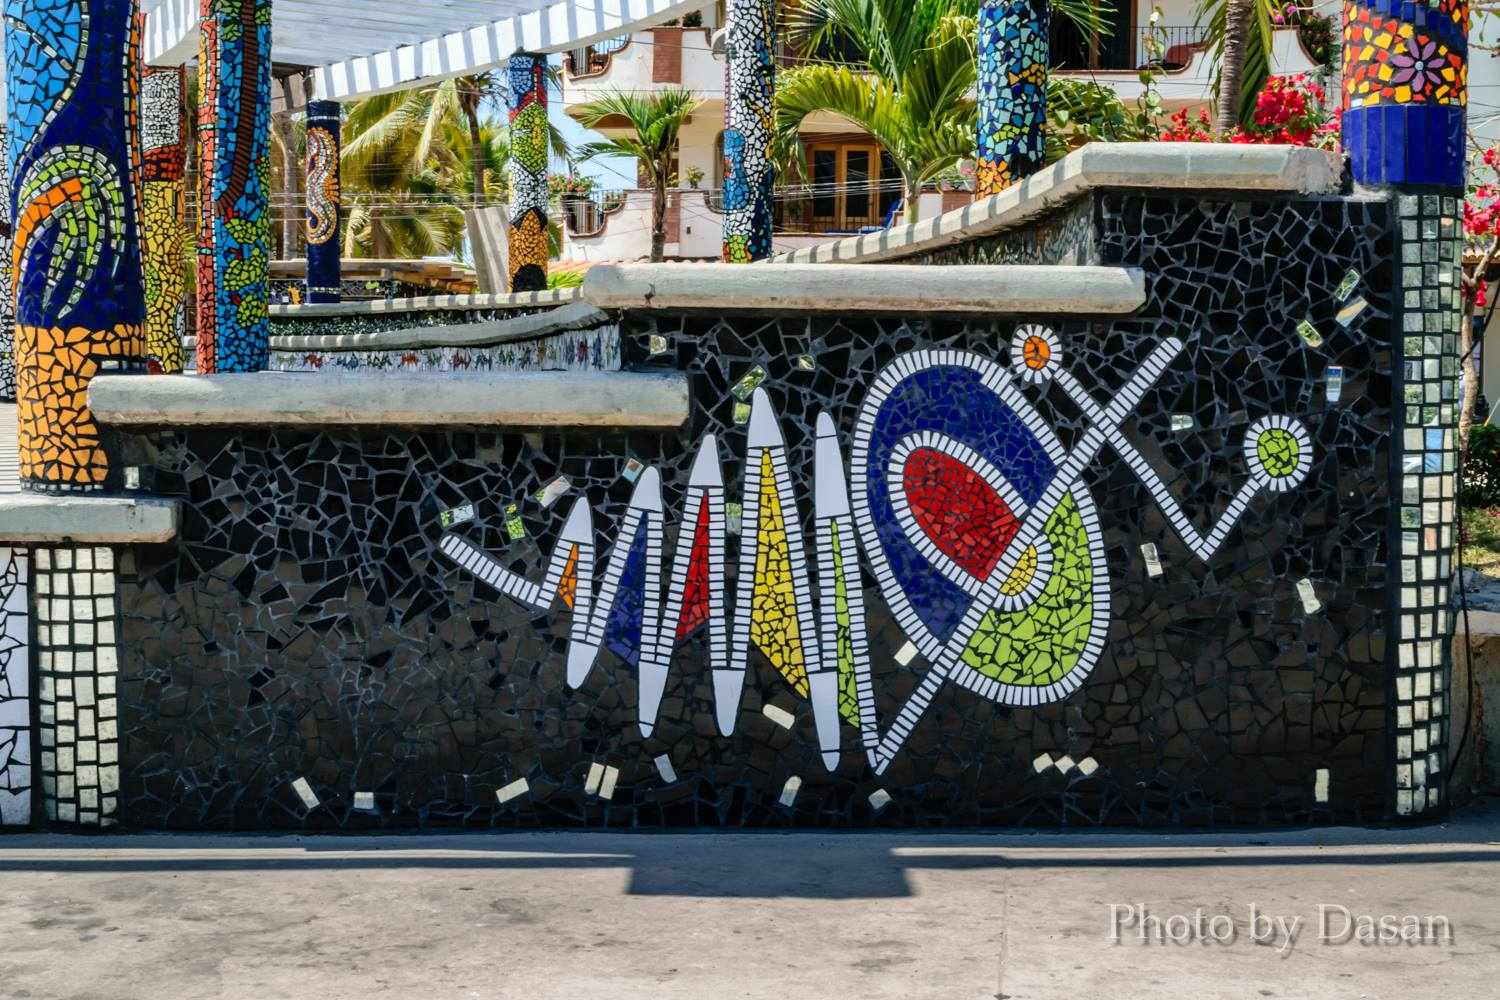 WElcome to el parque de los azulejos - Puerto Vallarta's first ever Mosaic Tile Park